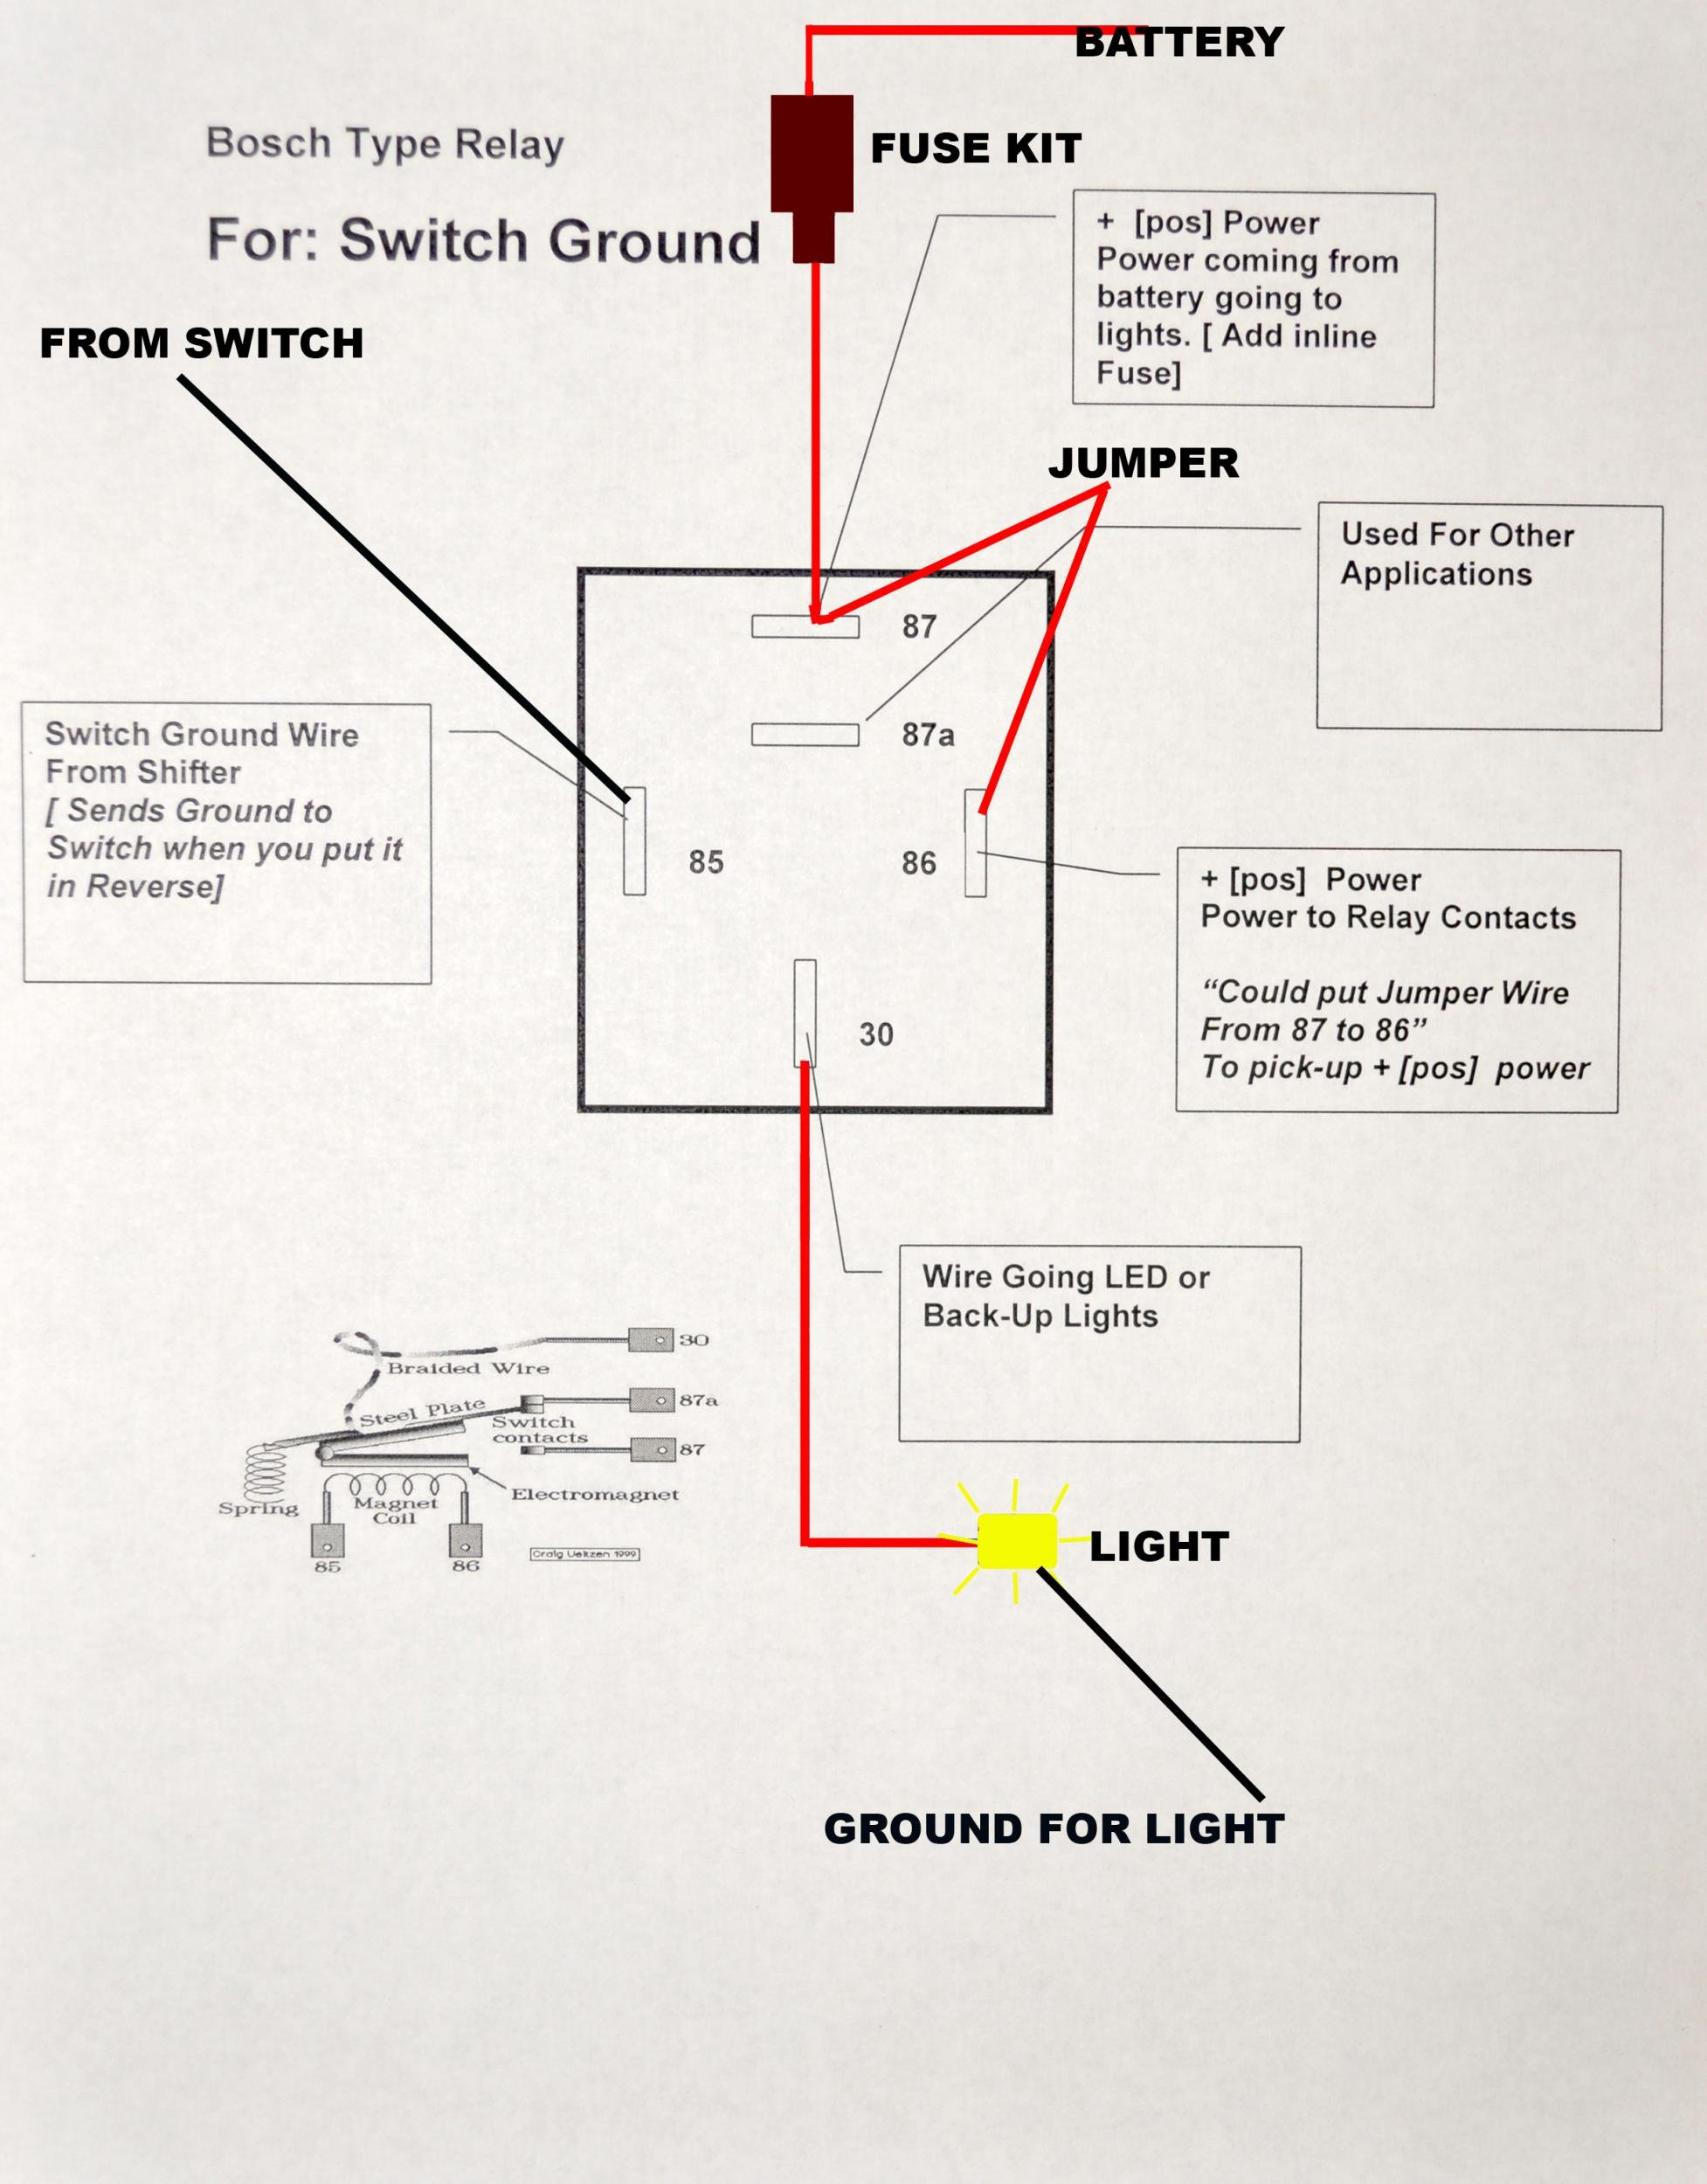 Bosch Type Relay Wiring Diagrams Solutions Fog Light Diagram Circuit Connection